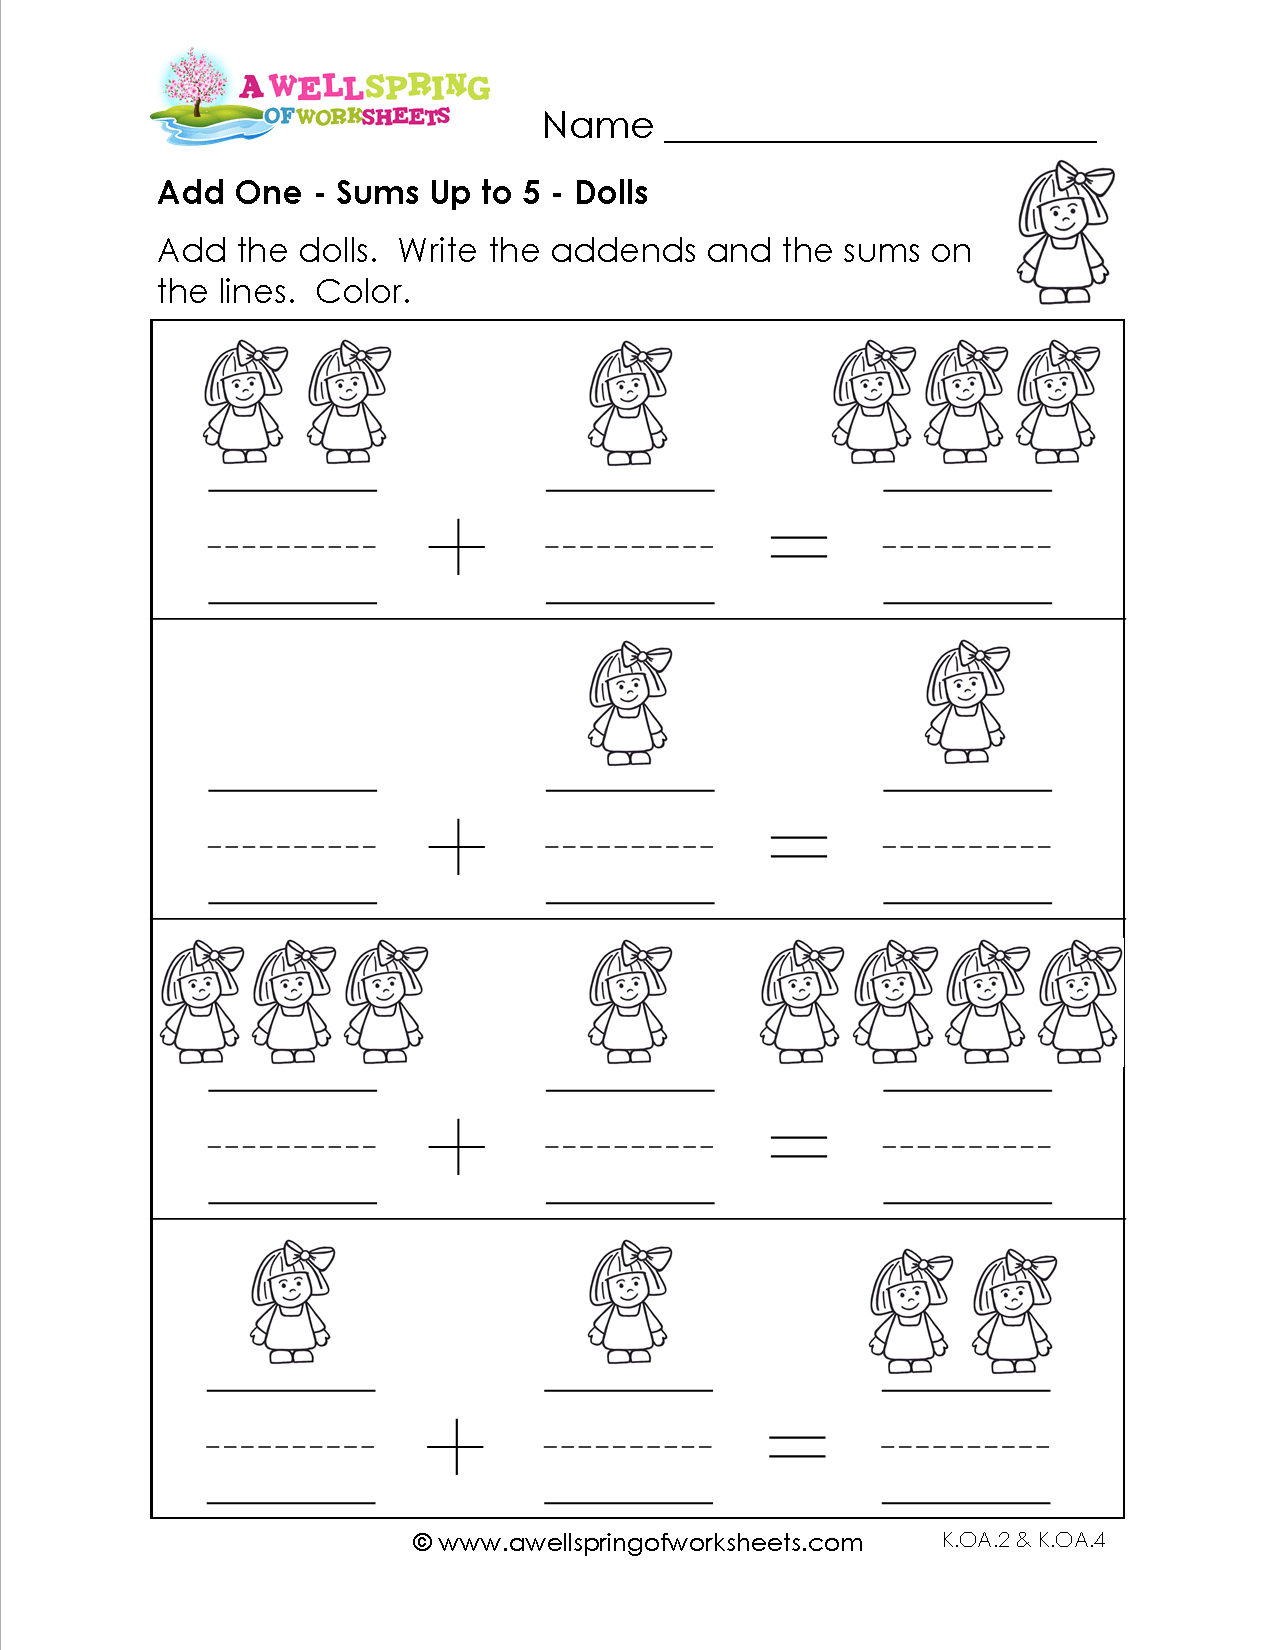 Adding 1 Worksheets Great Set Of Worksheets To Reinforce